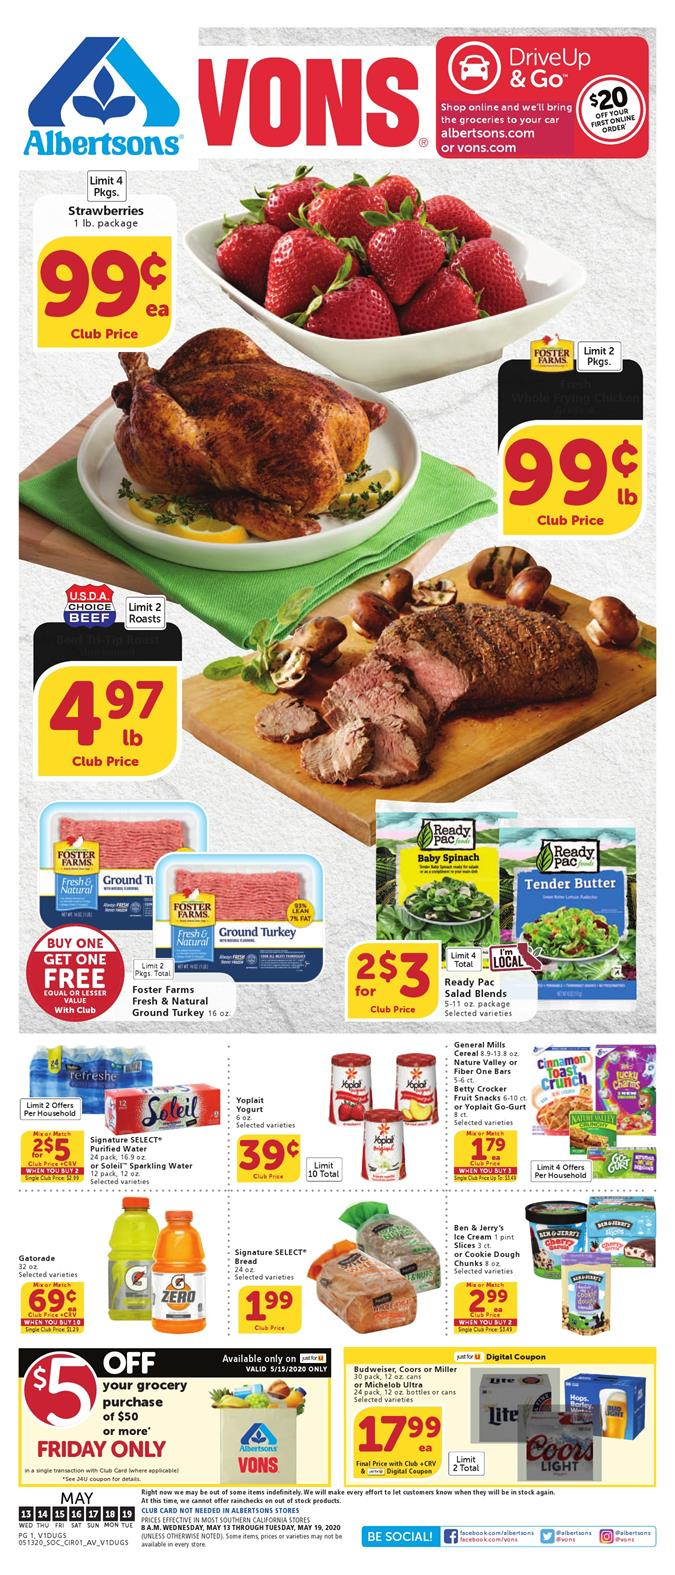 vons weekly ad may 13 2020